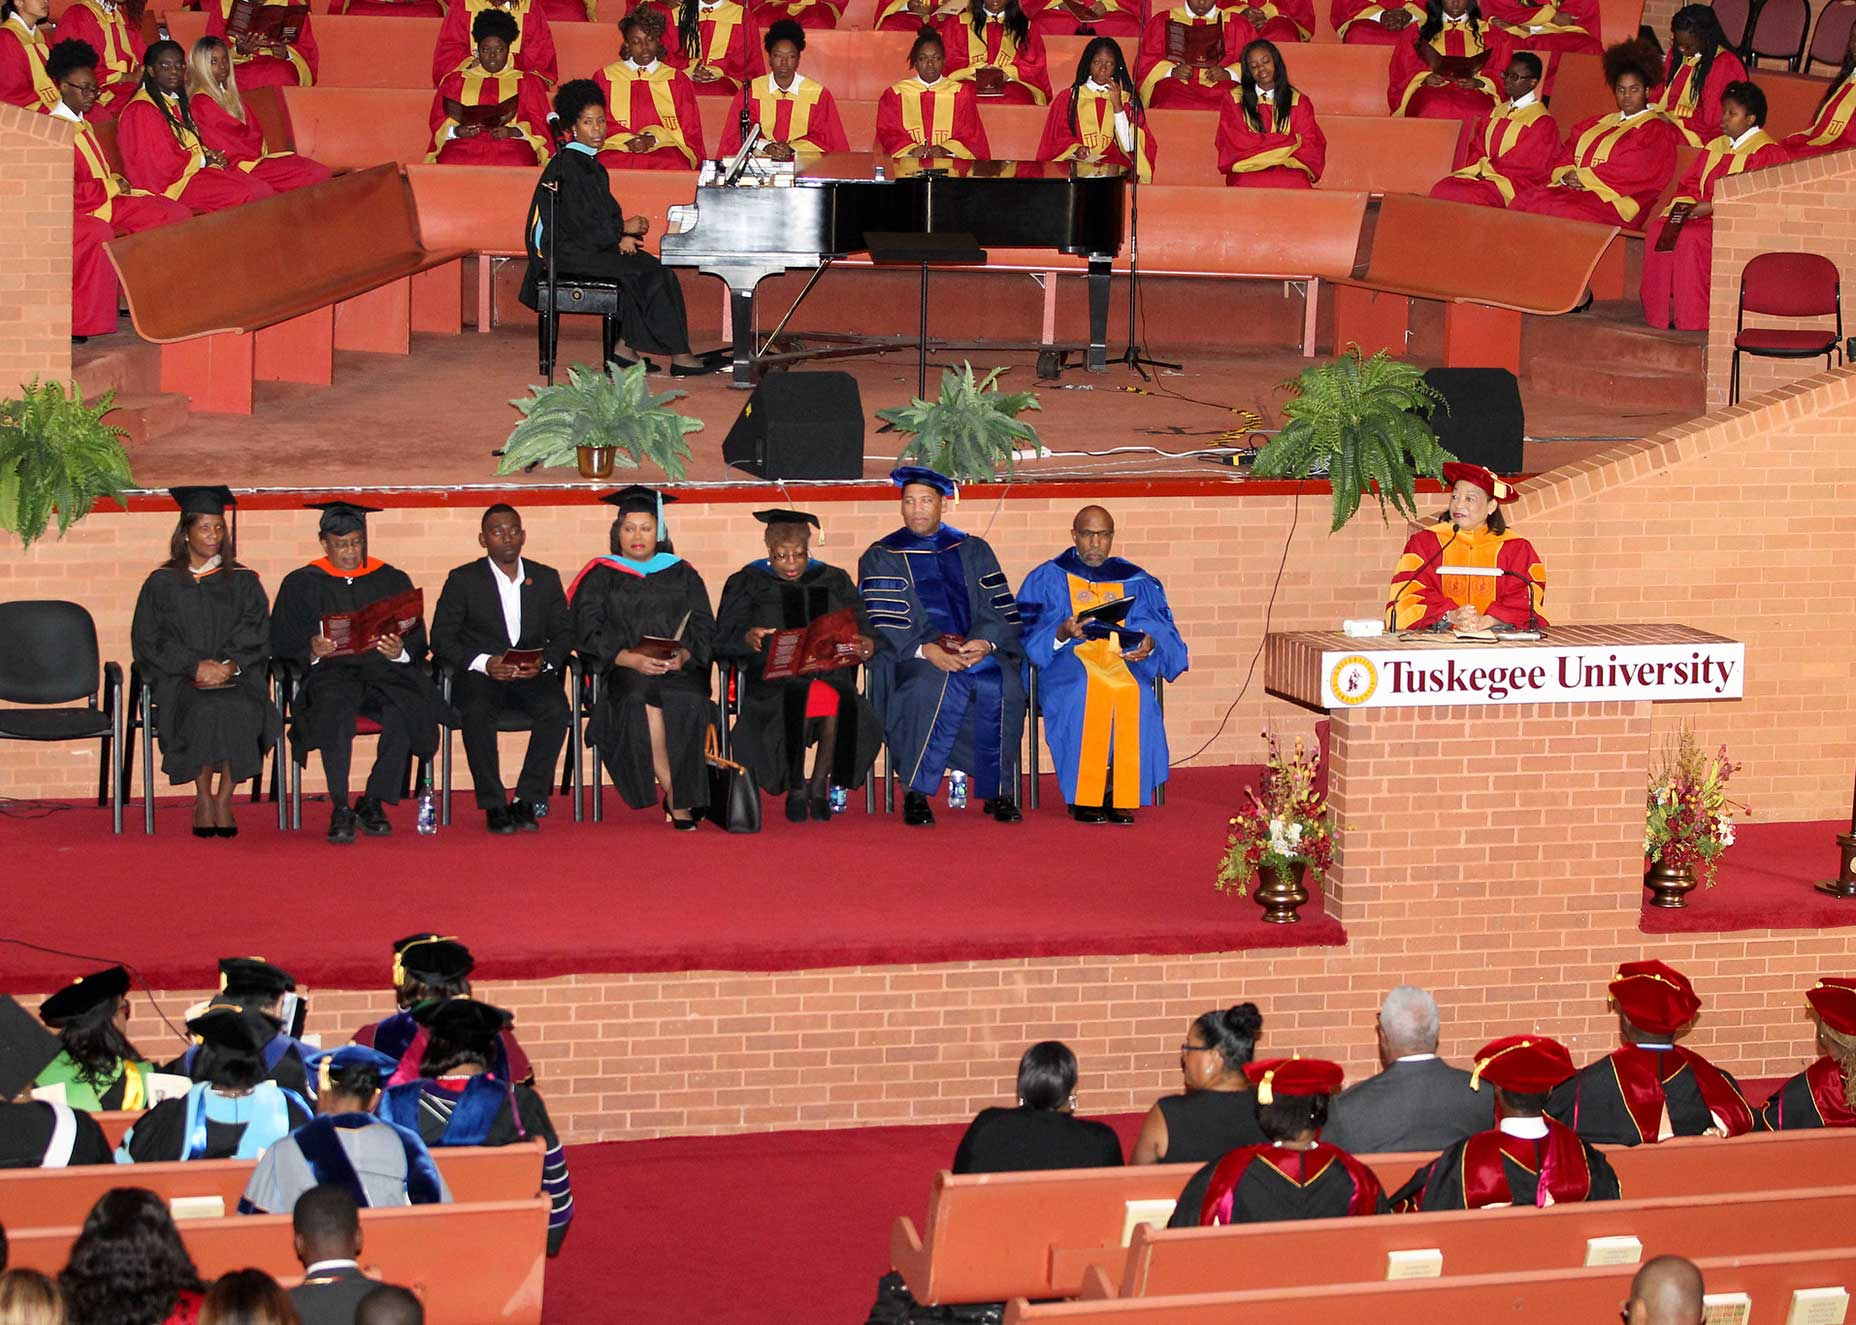 Convocation inside the TU Chapel